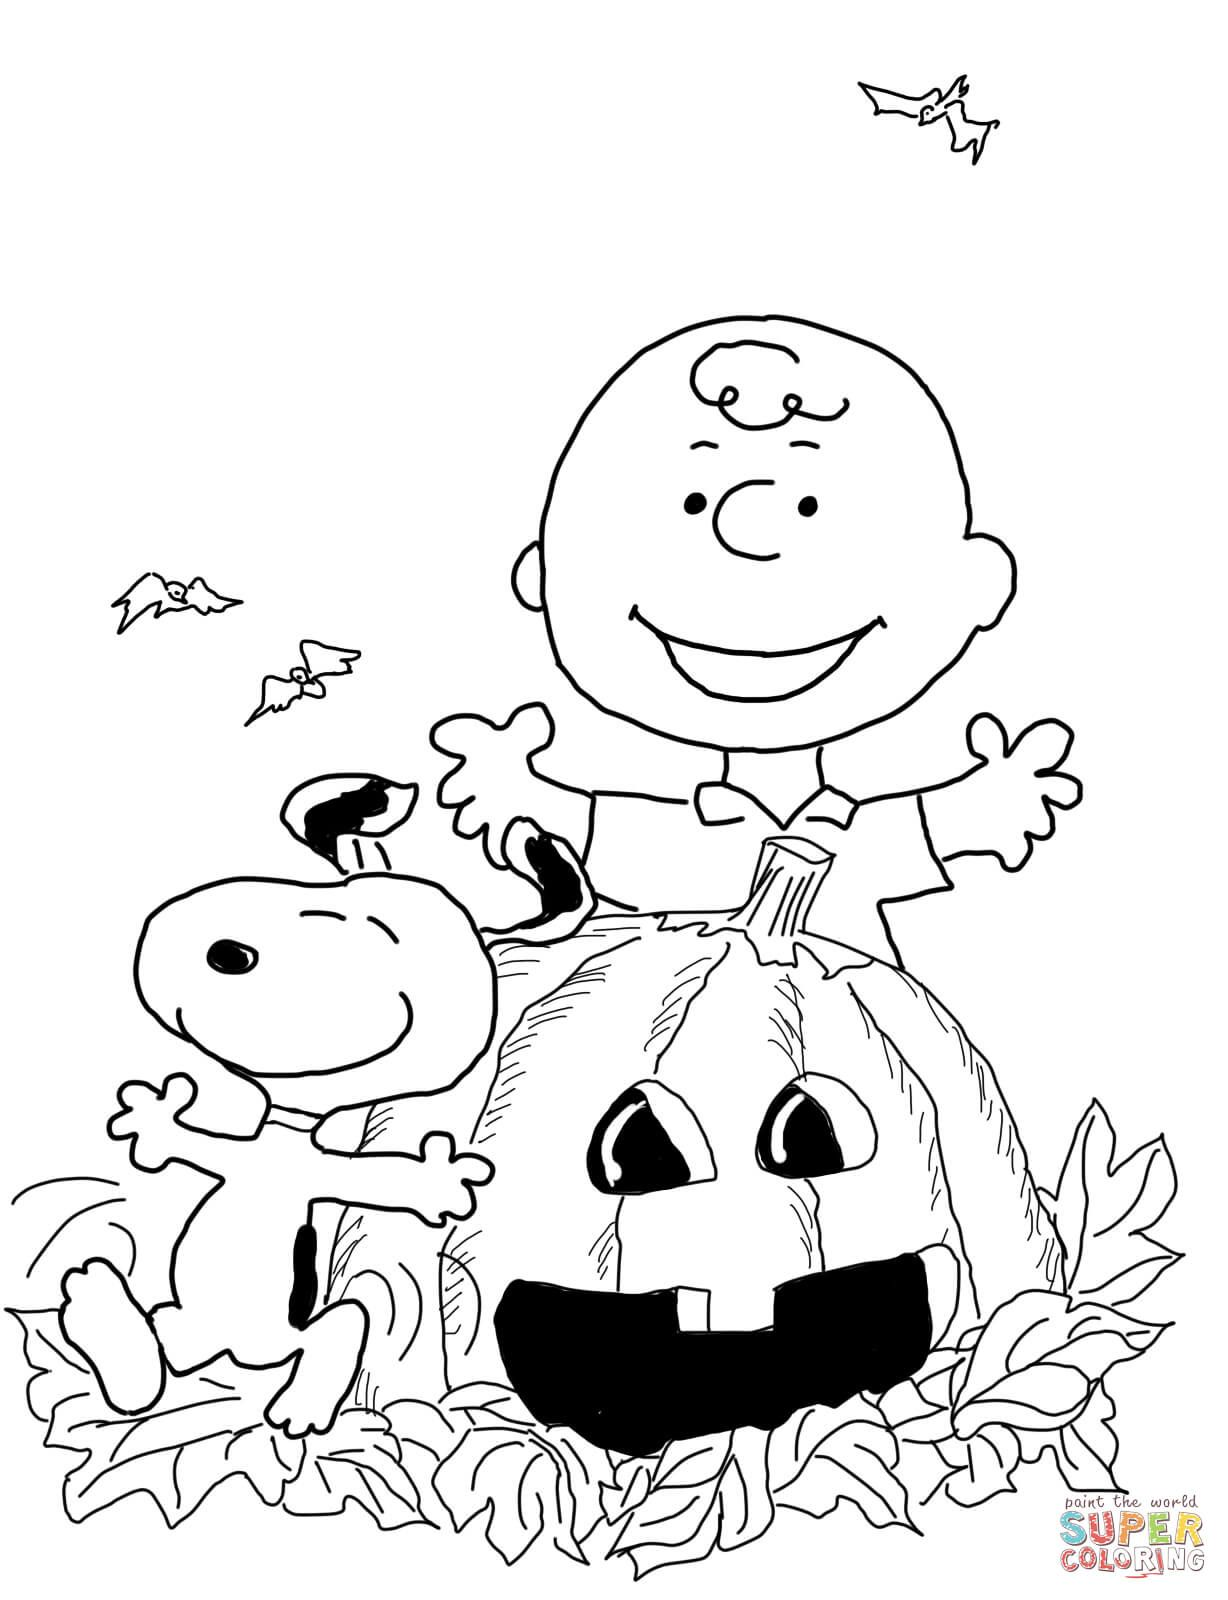 Charlie Brown Halloween coloring page from Peanuts category